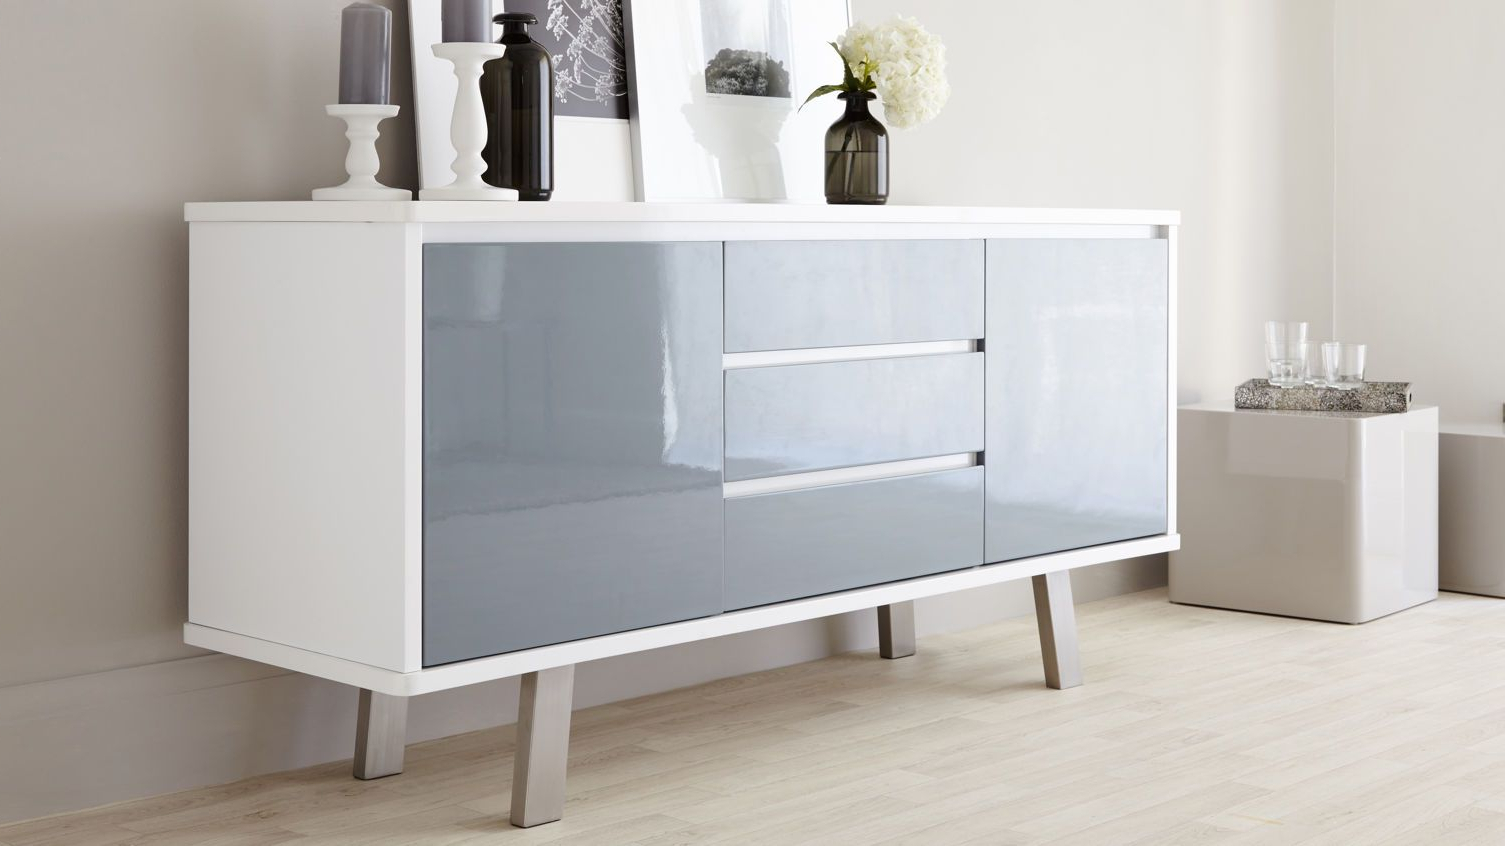 Assi White And Grey Gloss Sideboard | Danetti | Stylish Intended For White Wood And Chrome Metal High Gloss Buffets (View 1 of 20)